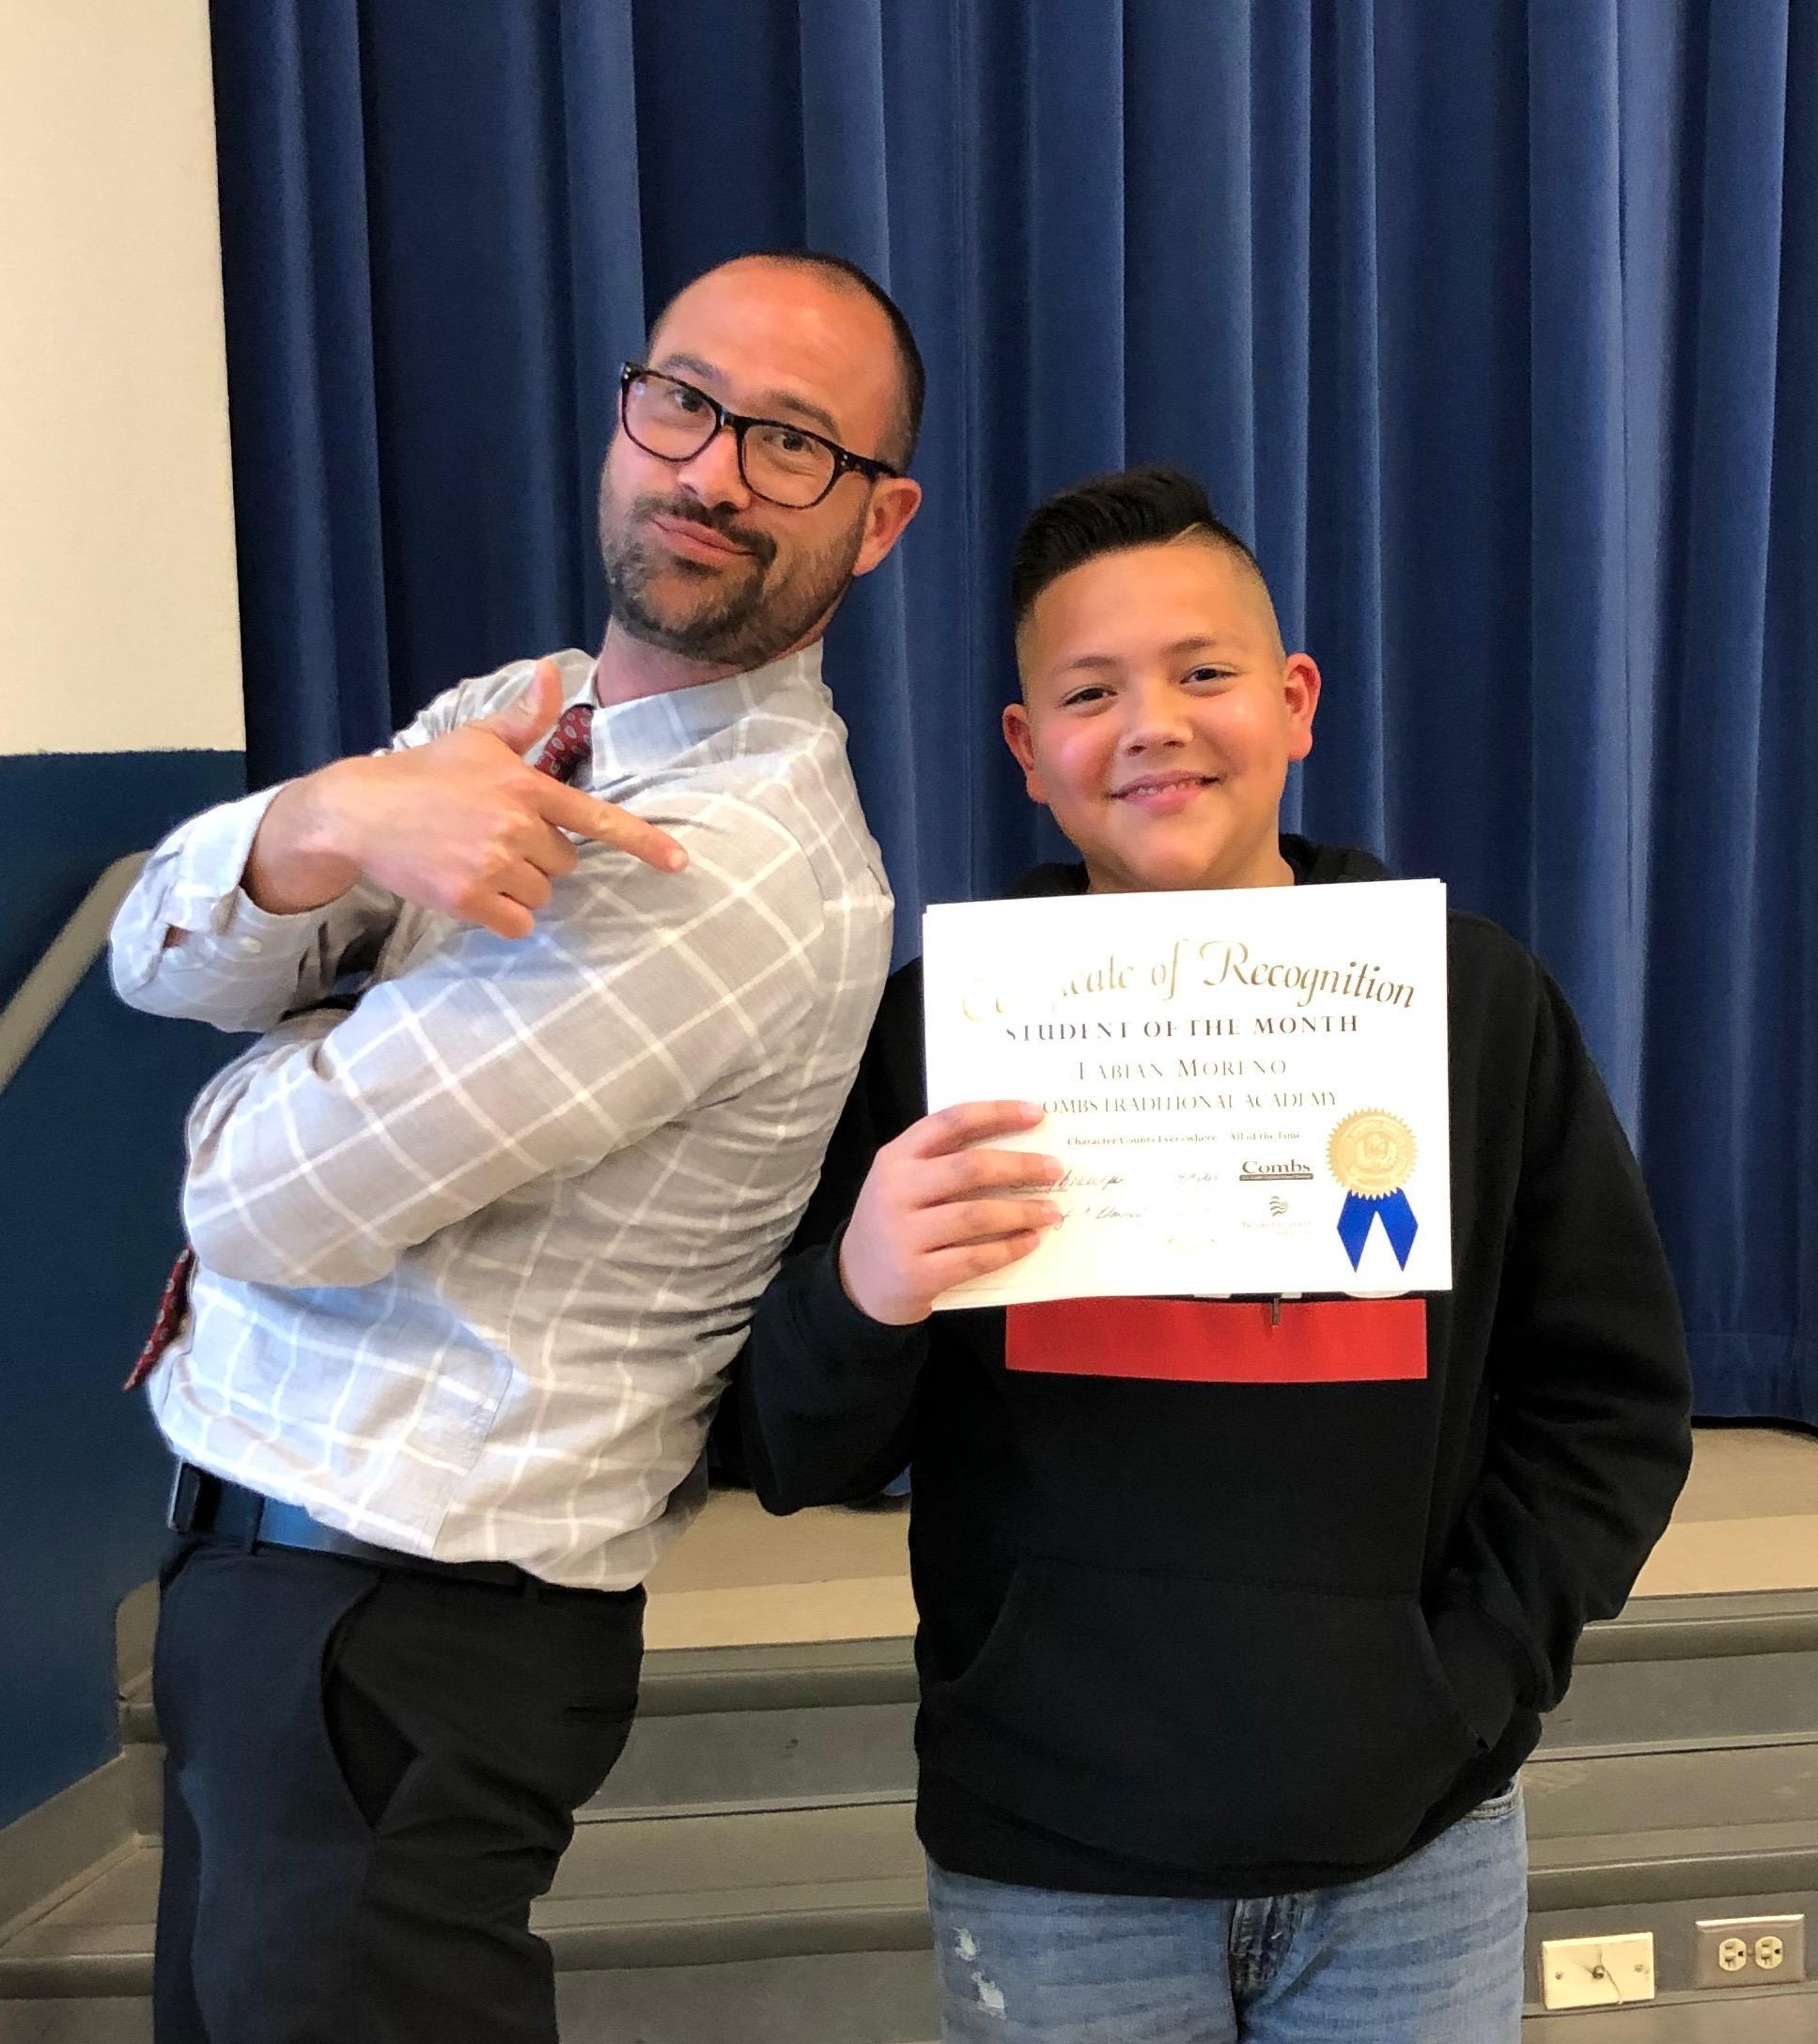 Fabian - April Student of the Month